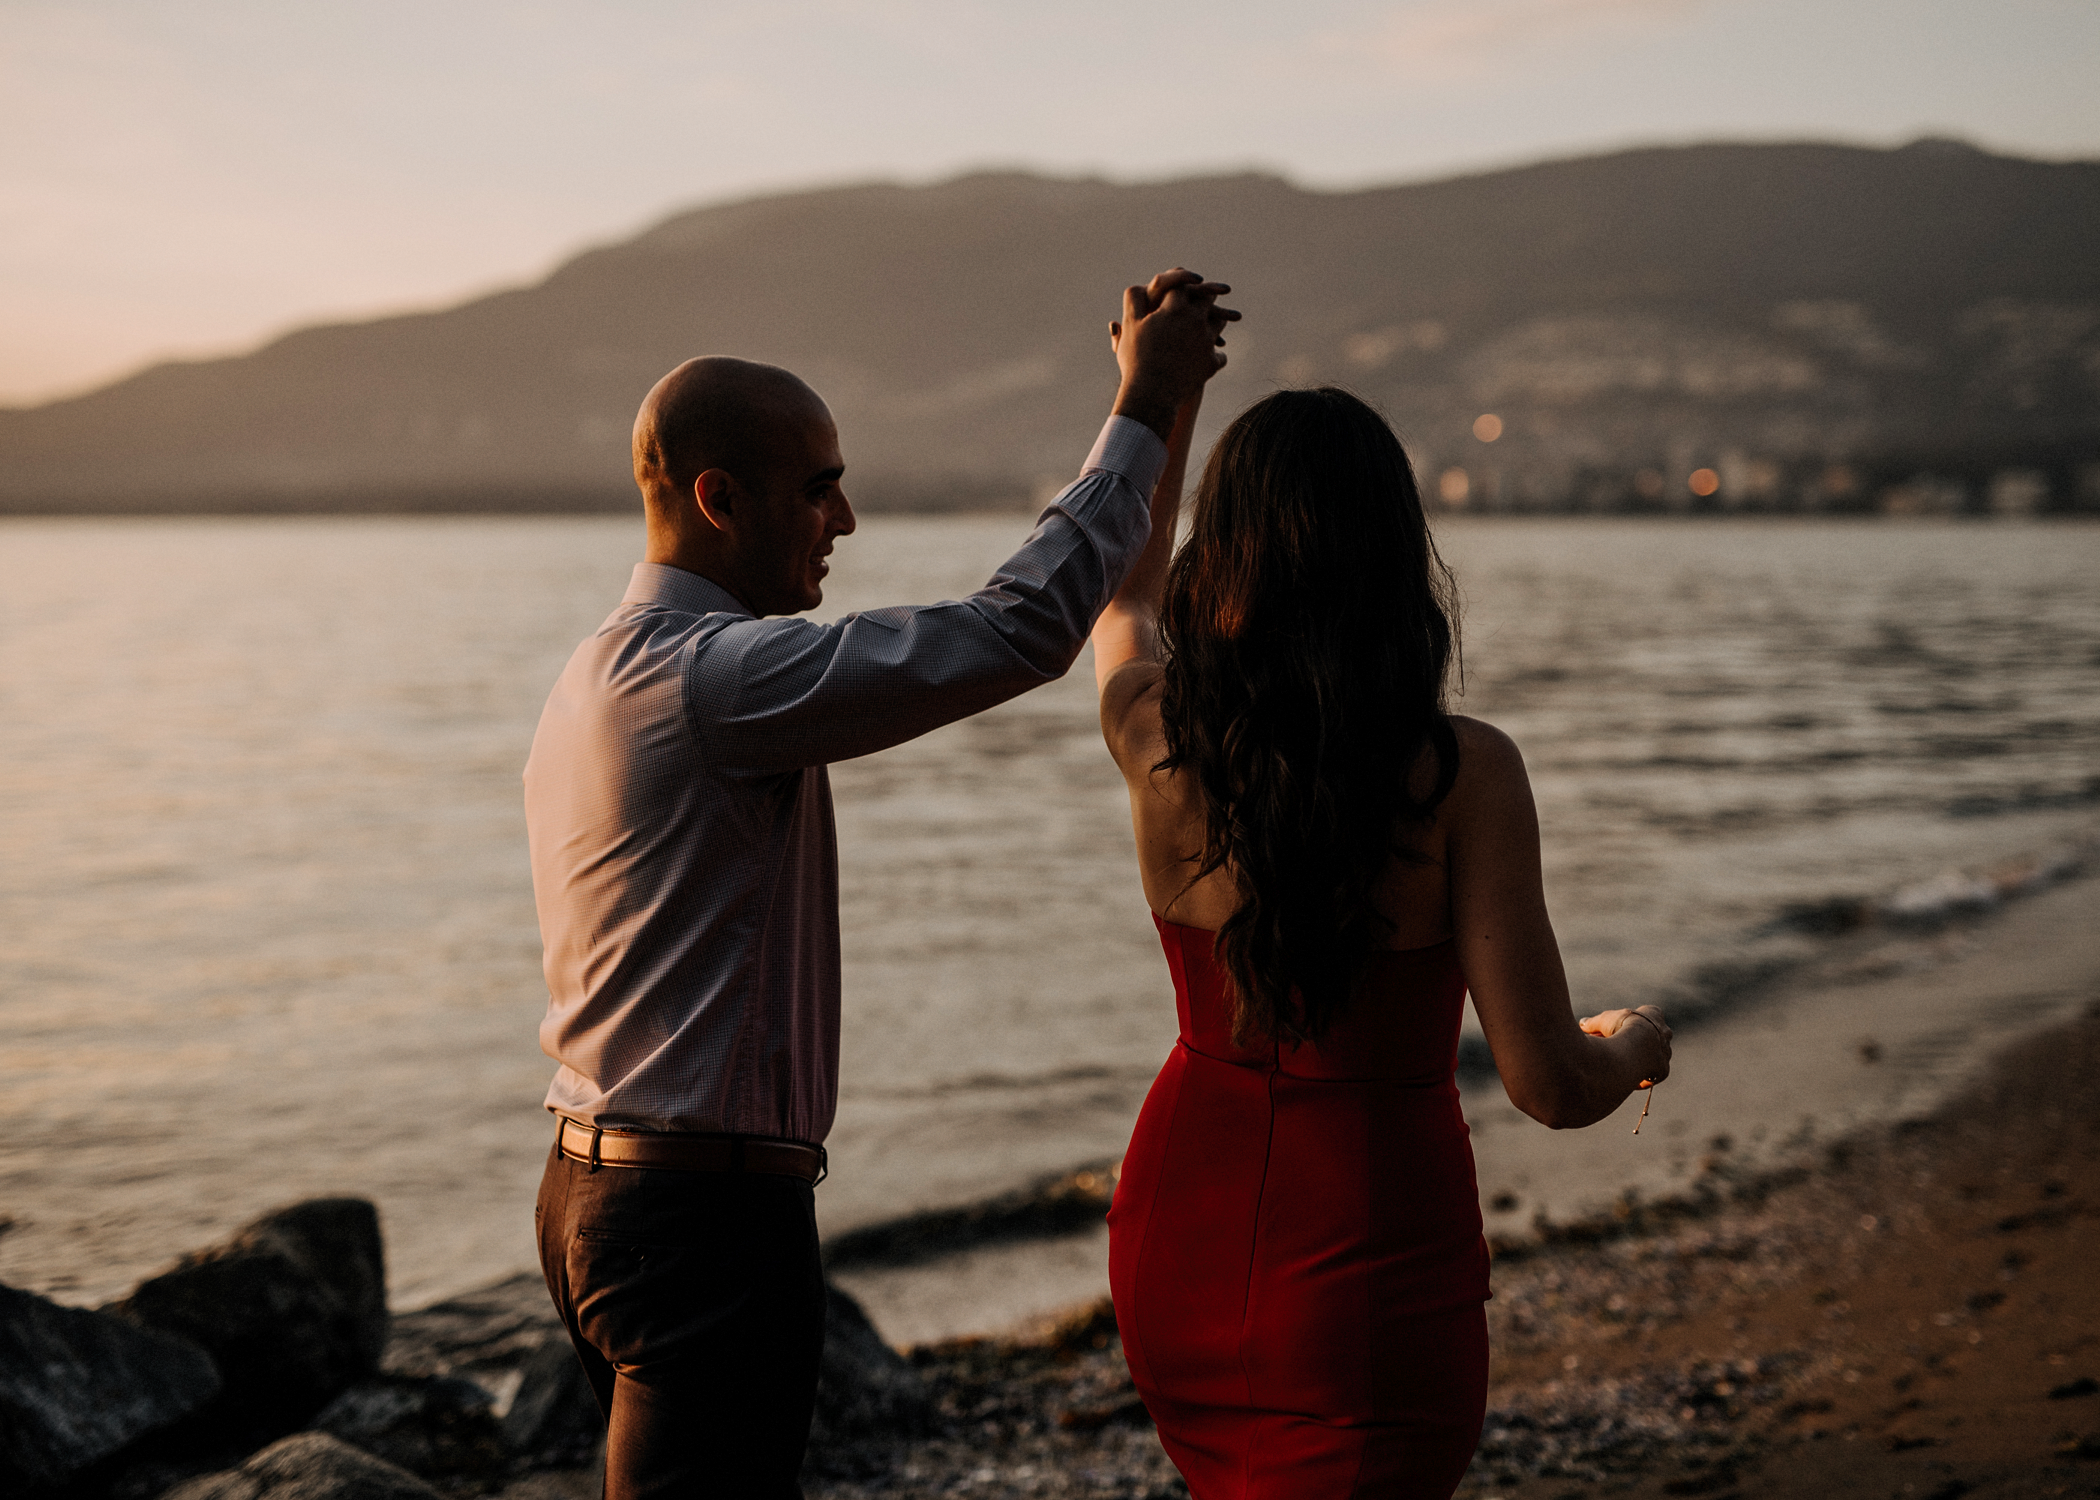 014-kaoverii-silva-AJ-prewedding-vancouver-photography-blog.png